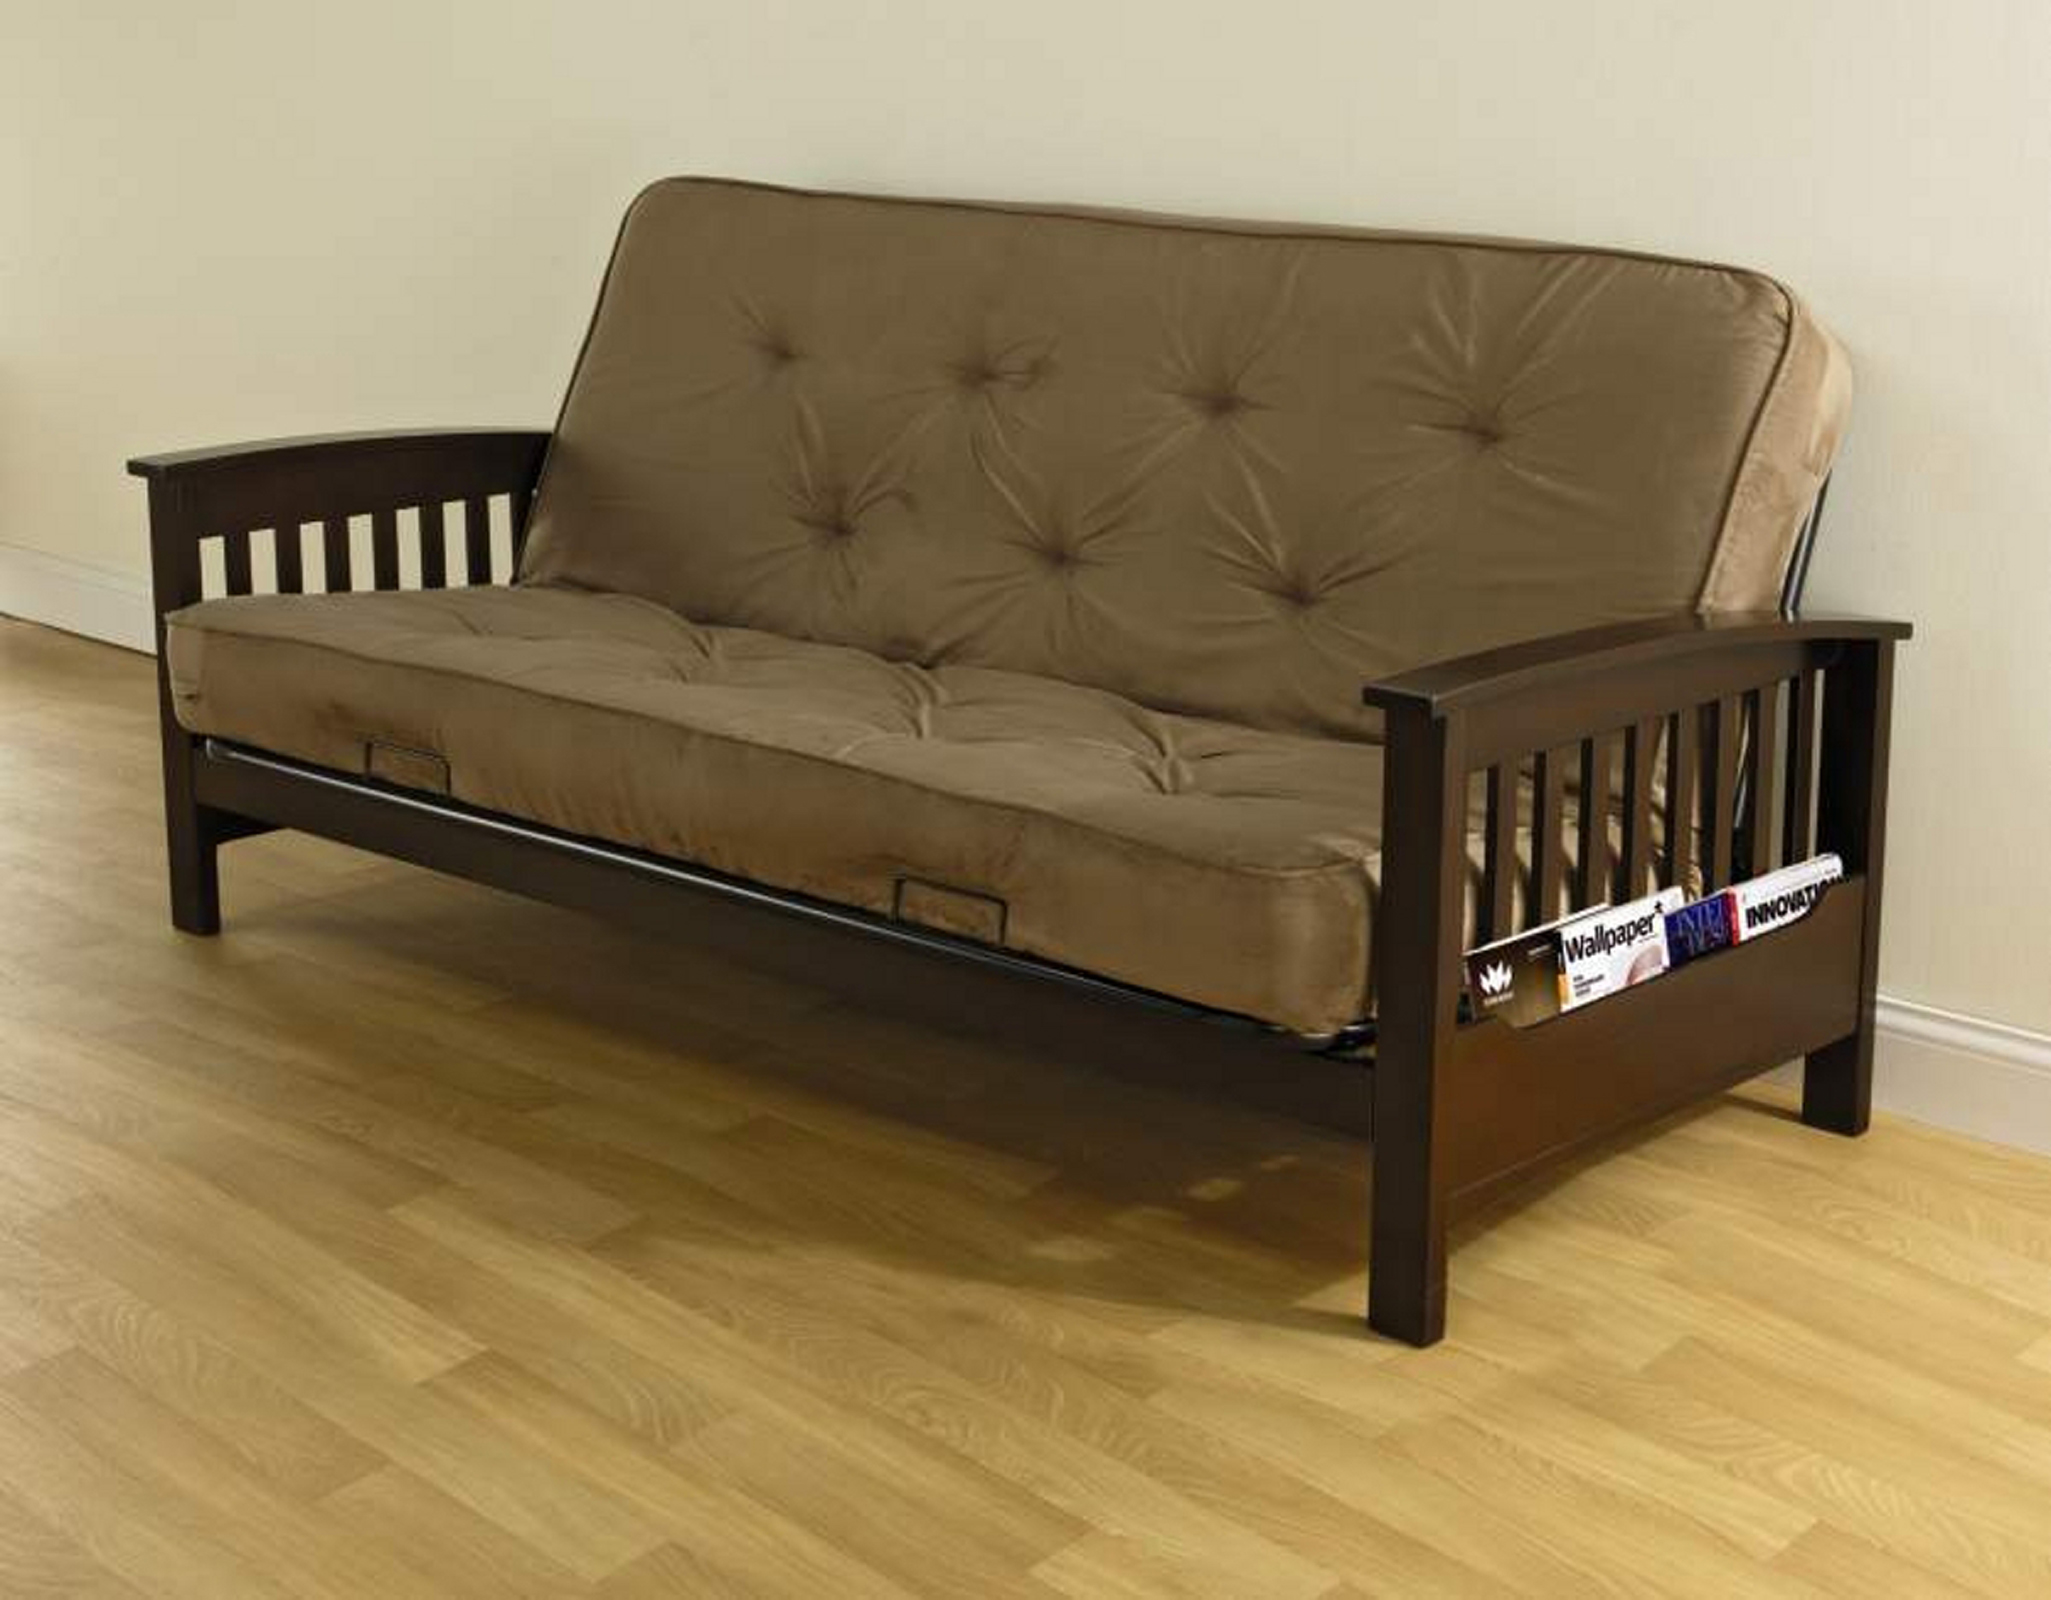 Bz Futon Essential Home Heritage Futon With Magazine Rack Tan